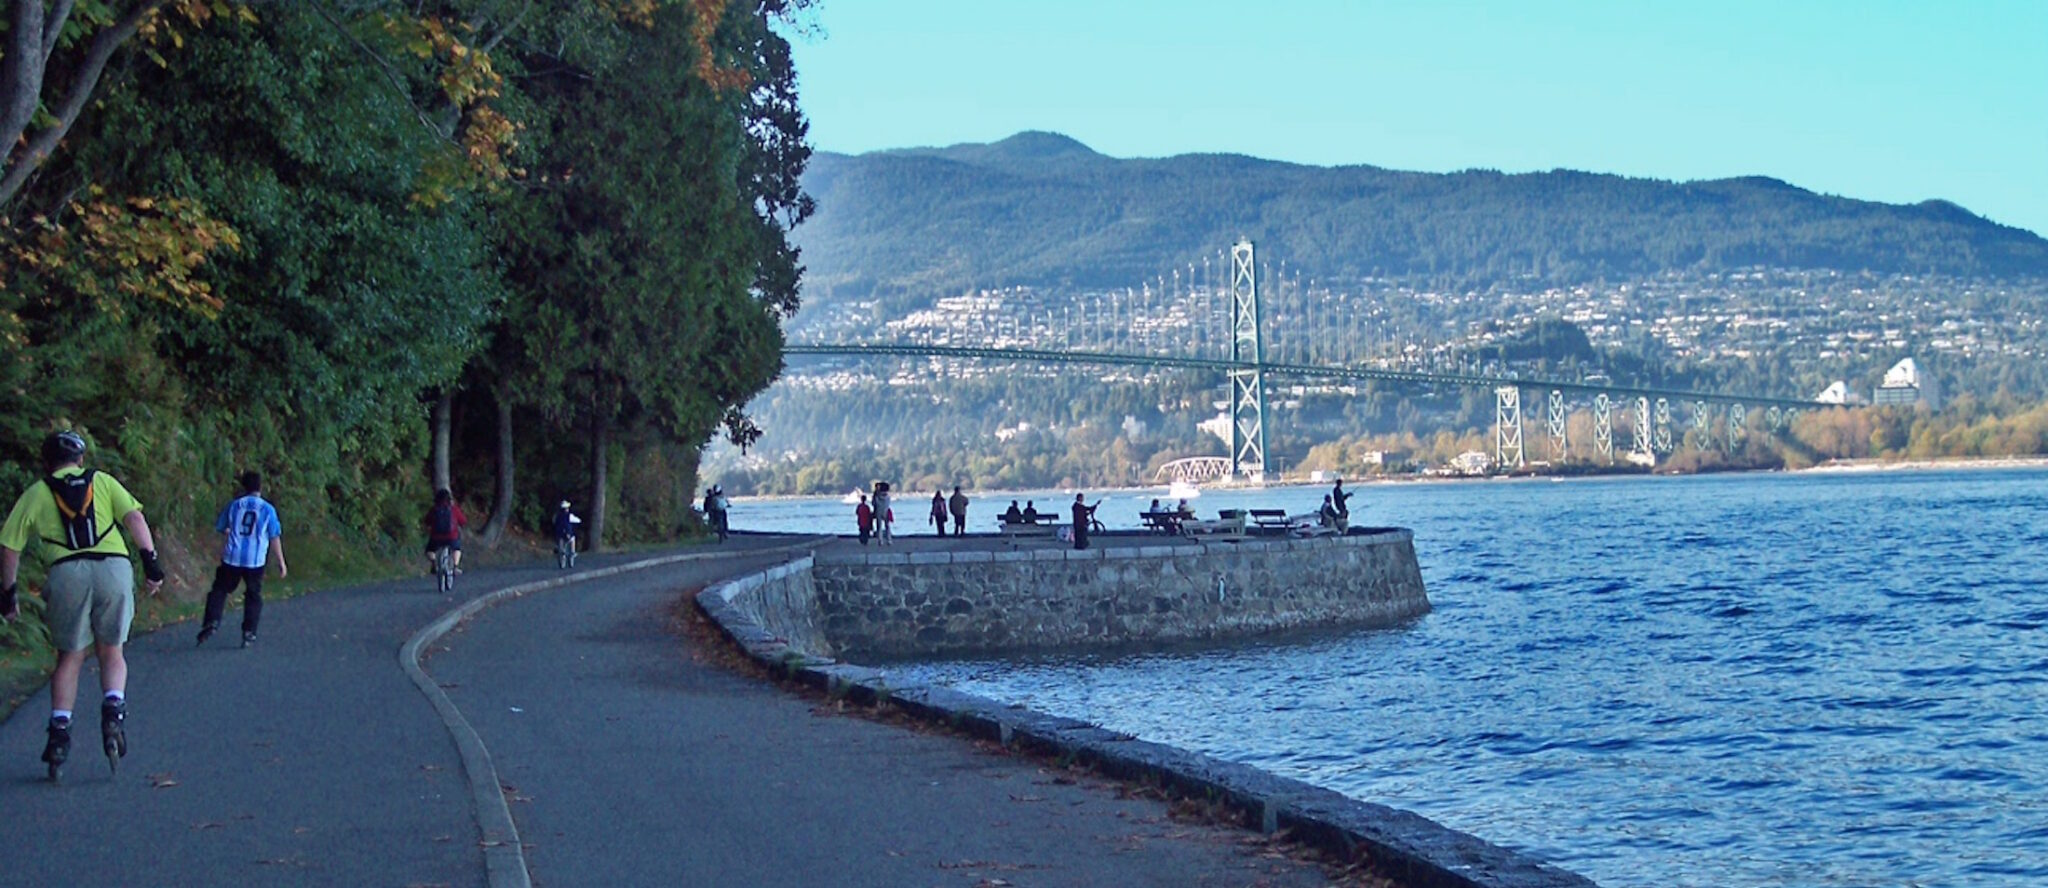 Ibogaine Treatment Cost The Lions Gate Bridge seen from Stanley Park in Vancouver, BC, Canada